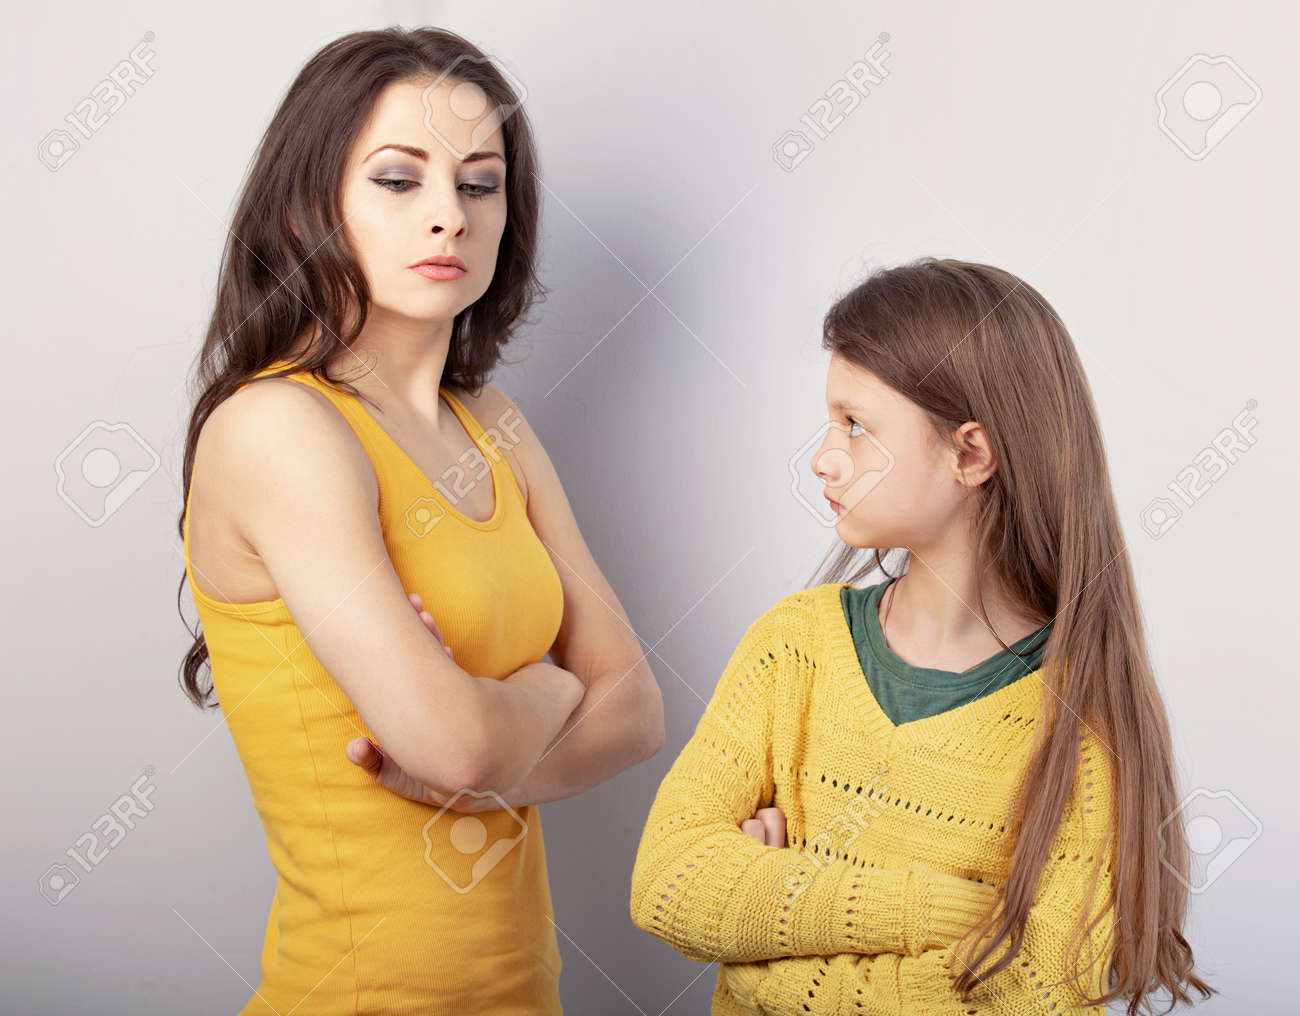 Beautiful concentrated strict mother and her serious emotional thinking daughter looking each other on blue background. Concept family emotion portrait. - 165435461